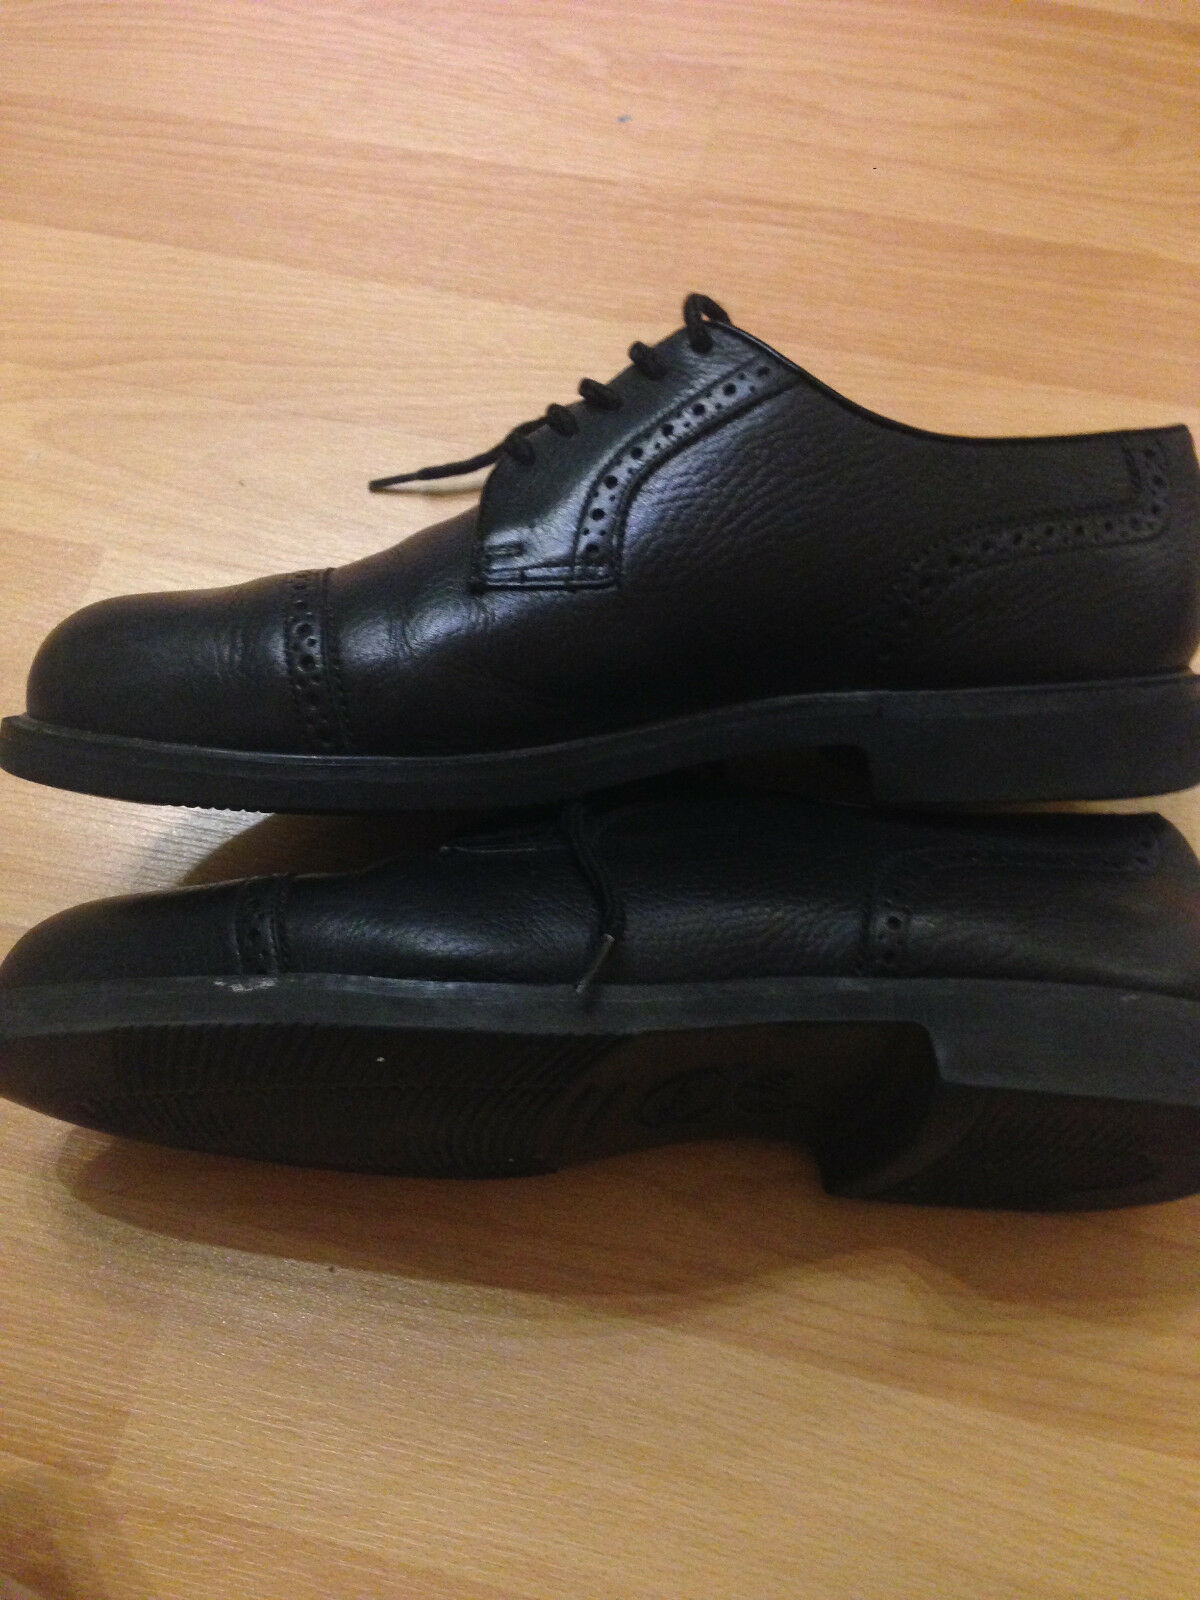 FLORSHEIM  LOAFERS  Herren BLACK  LOAFERS  Schuhe SIZE 9 1/2 , PREOWNED      KAFI 9bcc16